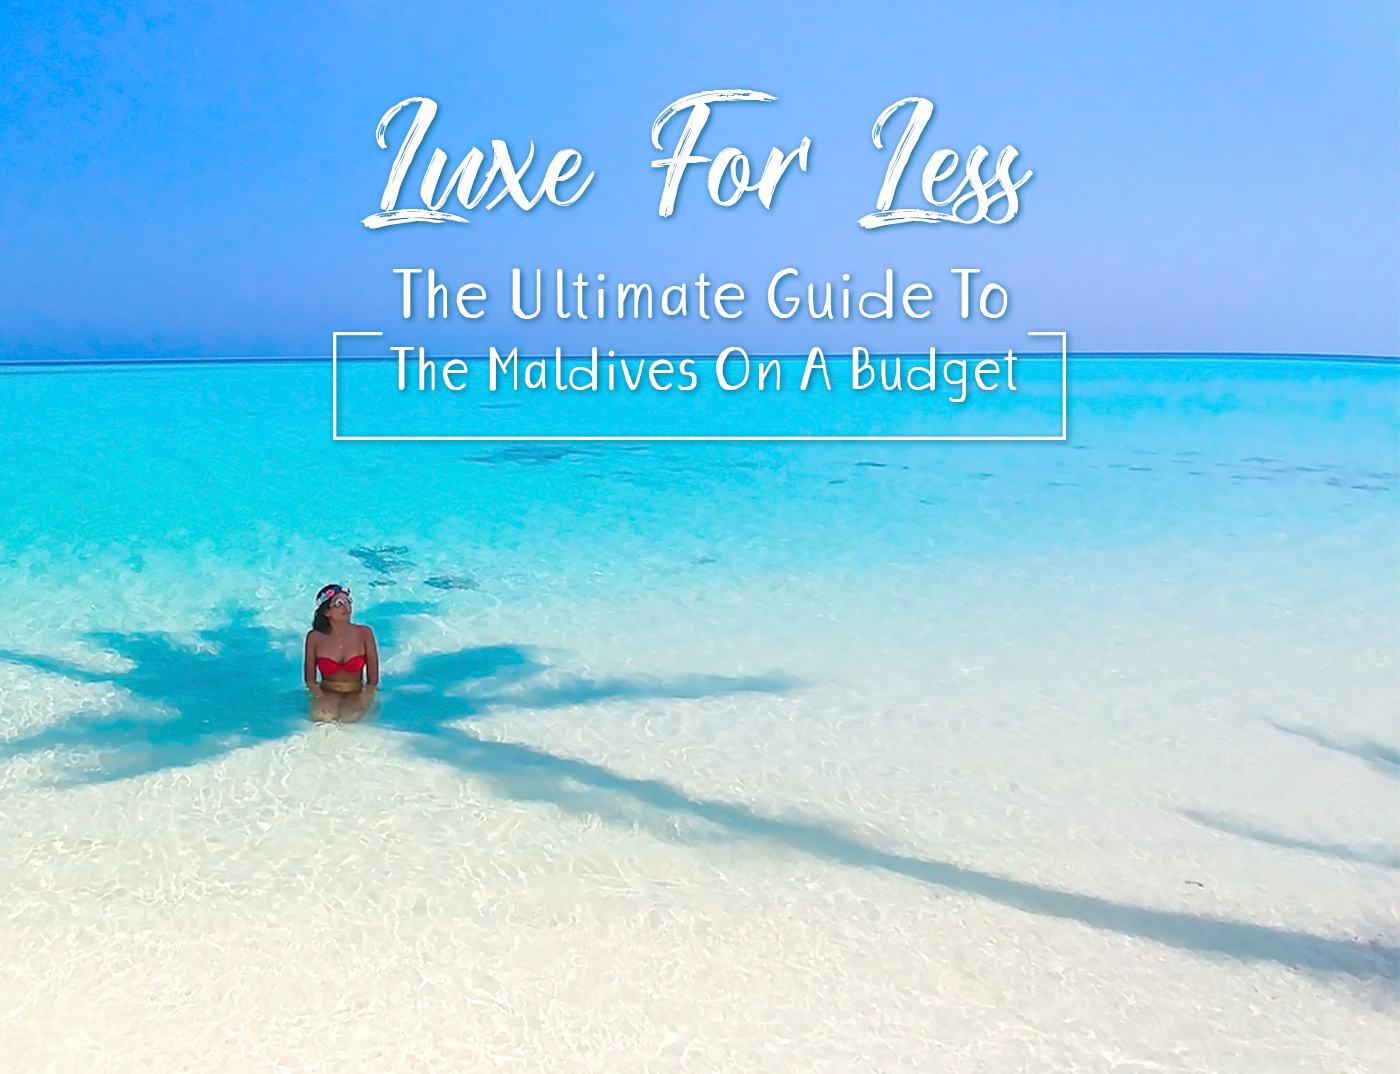 LUXE FOR LESS – THE ULTIMATE GUIDE TO THE MALDIVES ON A BUDGET